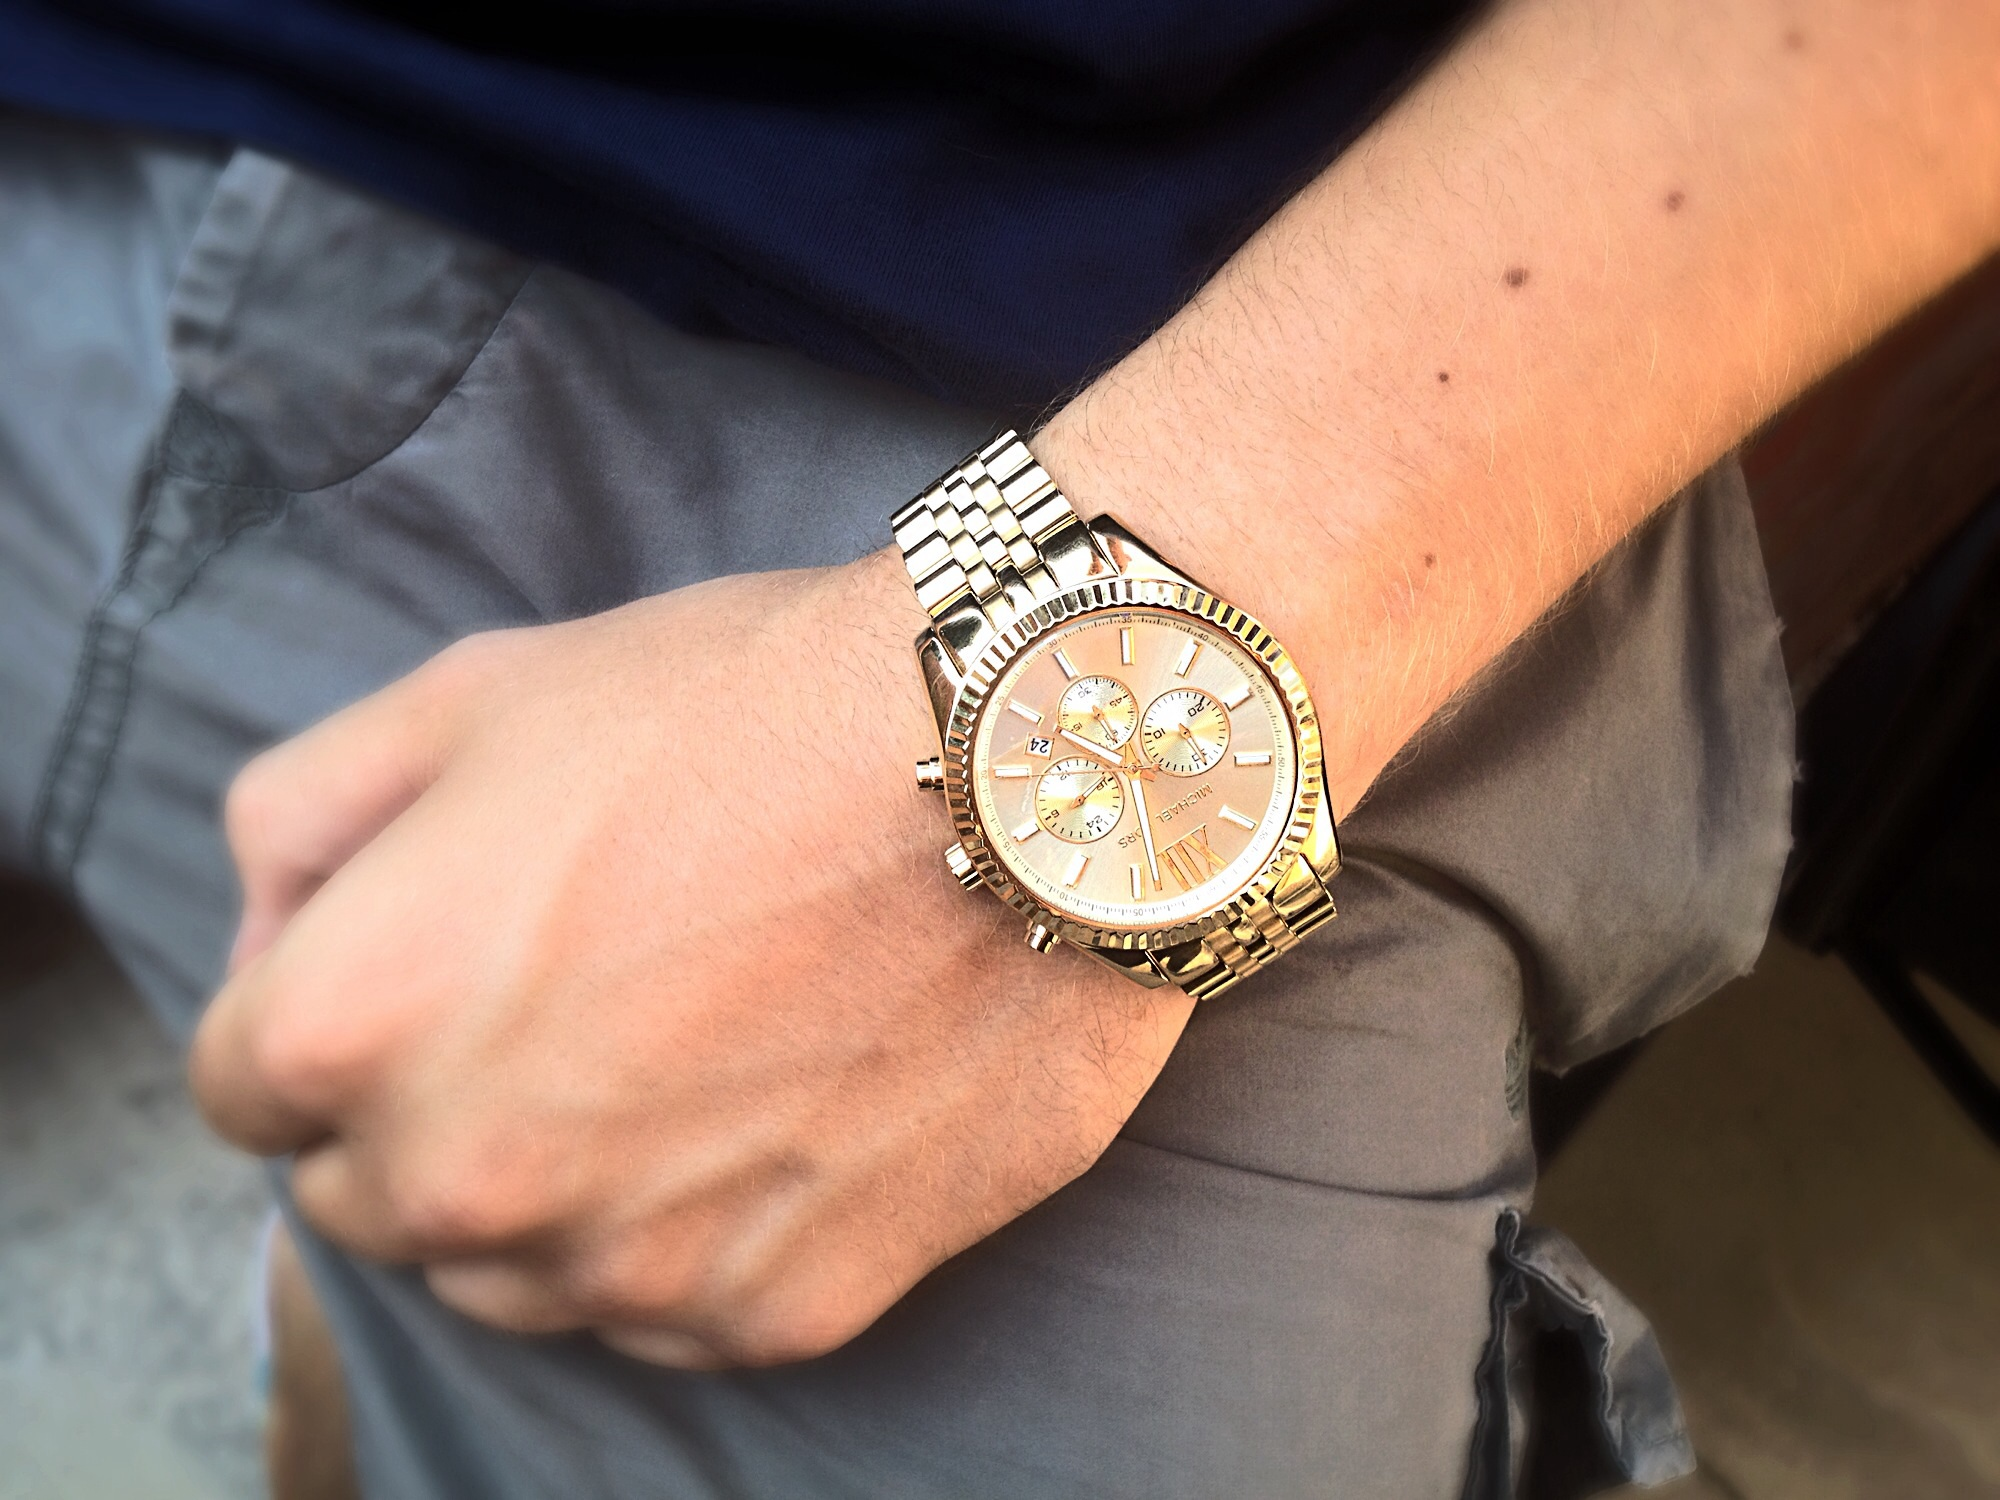 e3093912d709 I bought this watch as a gift for my boyfriend. I wasnt so sure hed like it  at first